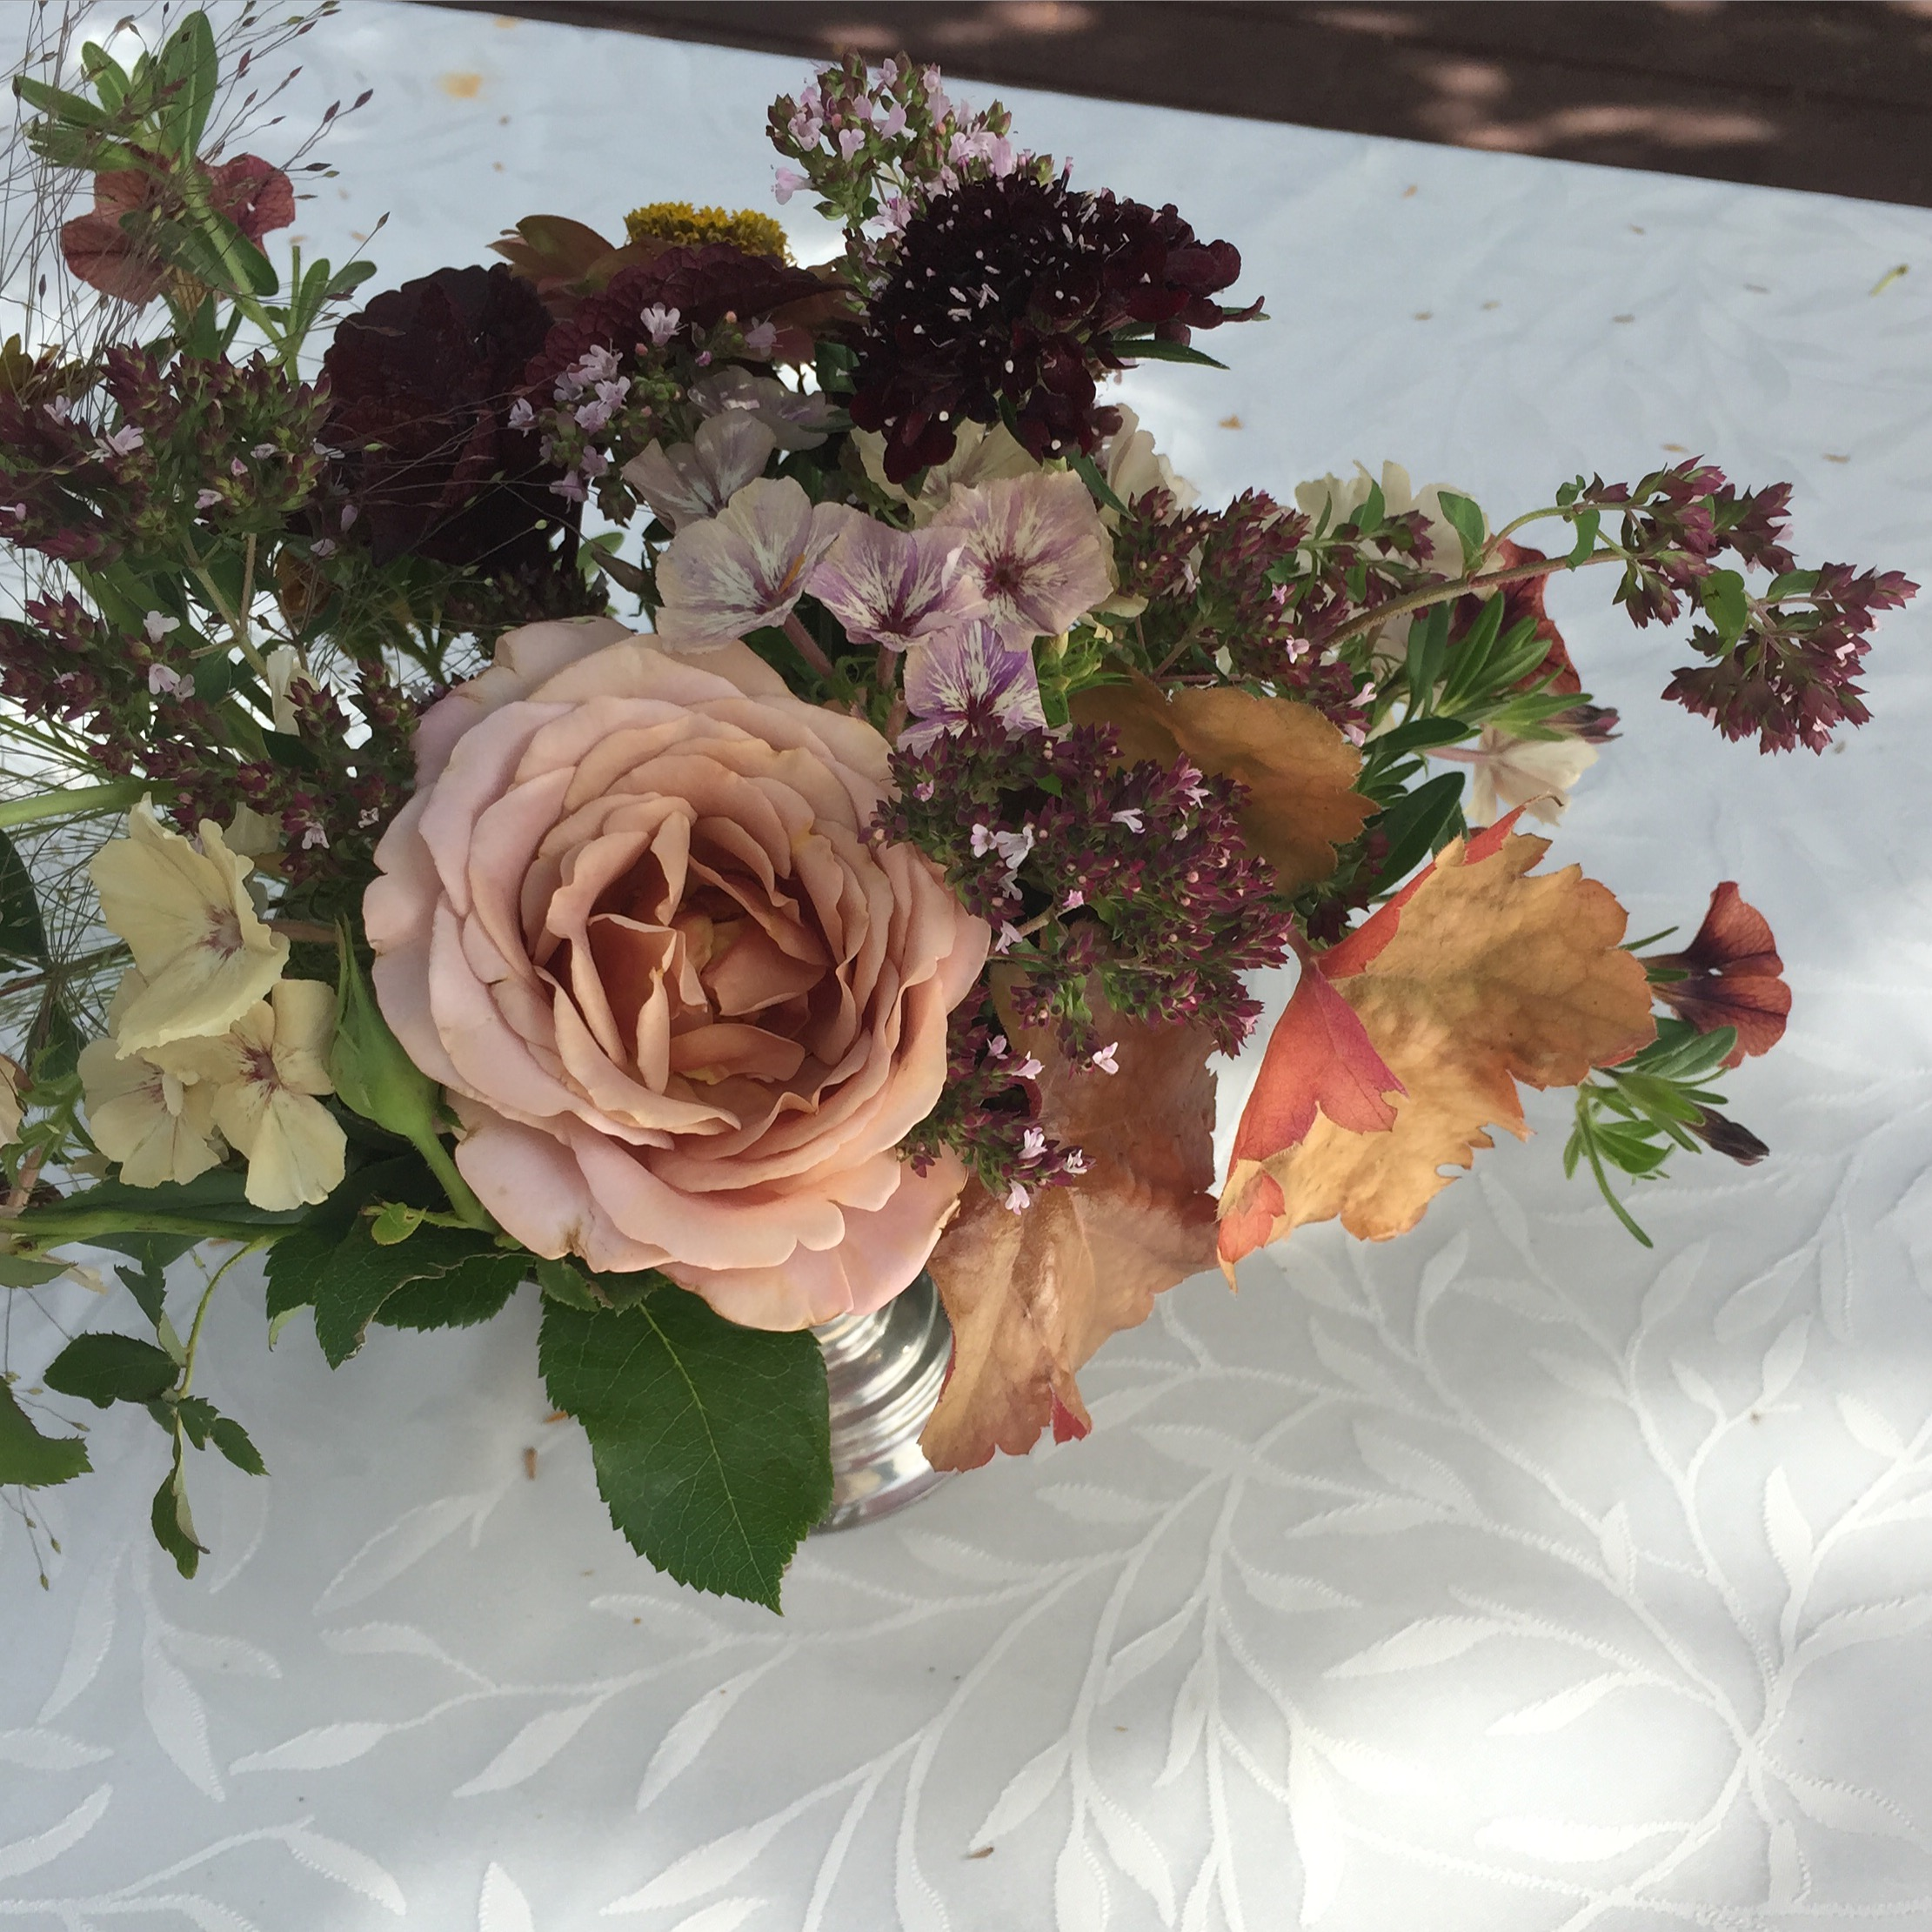 The first of the roses, Koko Loko, inspired this gorgeous colour scheme using phlox, heuchera, scabiosa, oregano, Frosted Explosion grass and calibrachoa.